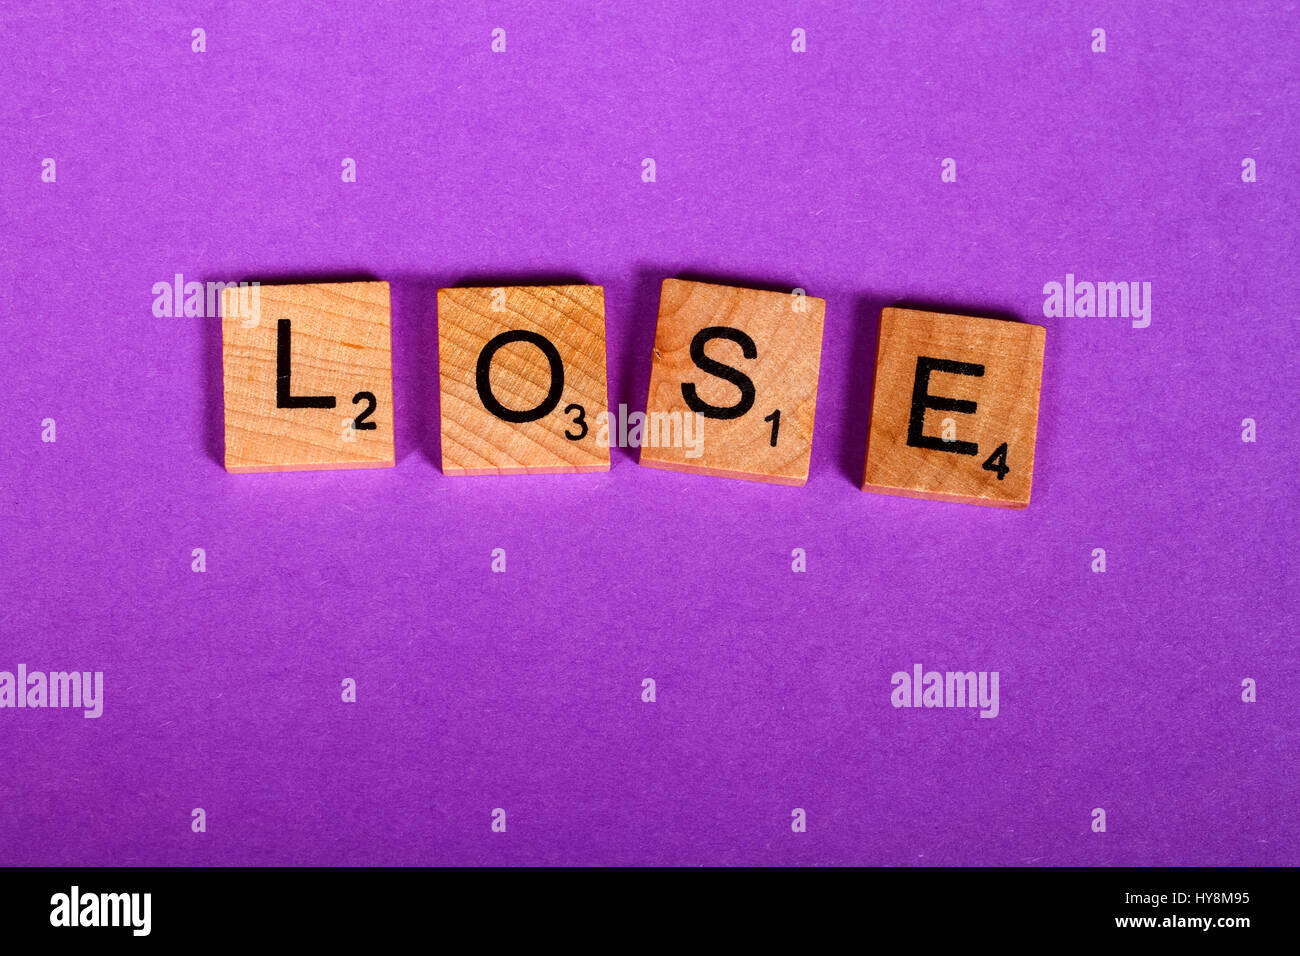 Letters spelling out the word Lose - Stock Image